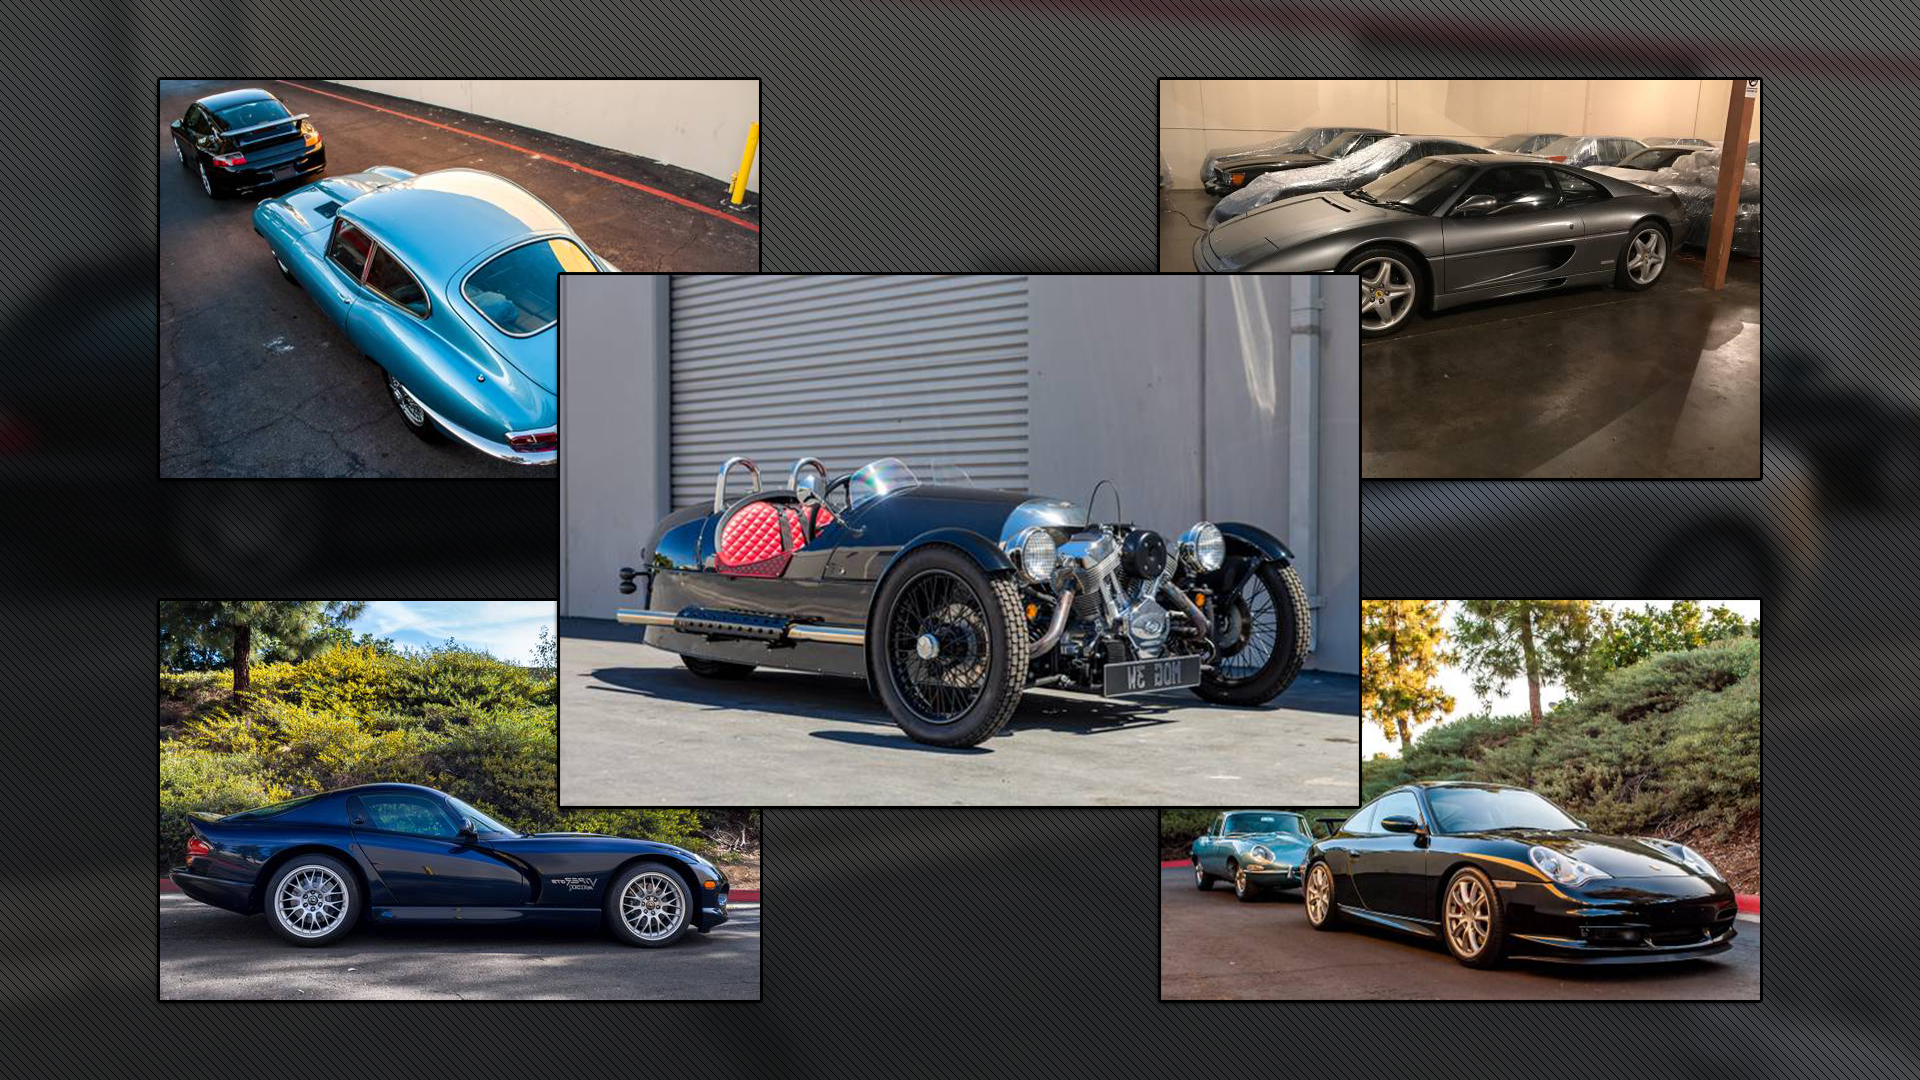 Enthusiasts: Raddest Collection of Attainable Dream Cars for Sale on